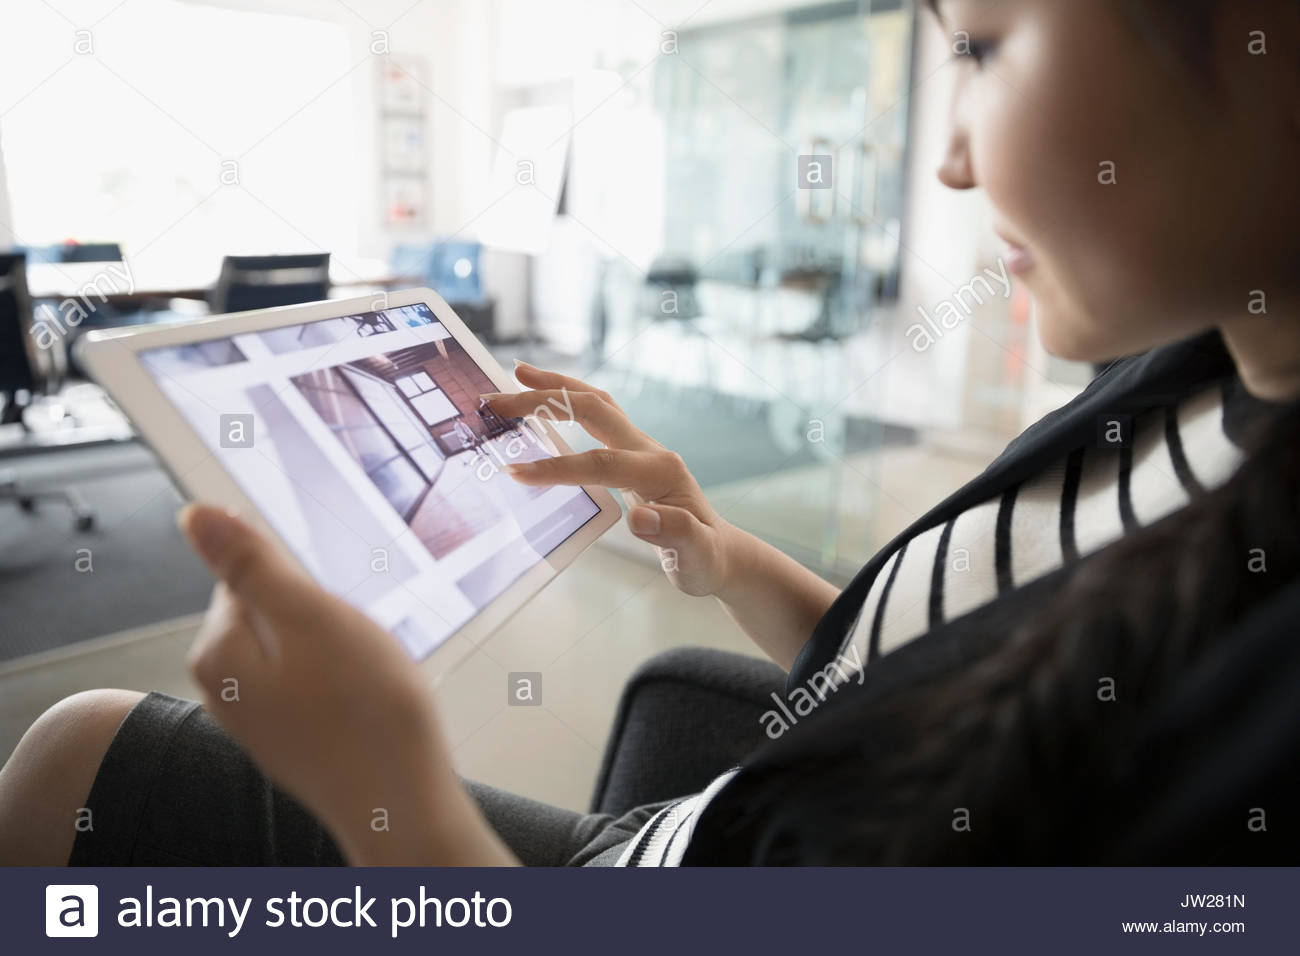 Female designer reviewing digital photographs on digital tablet in office Stock Photo